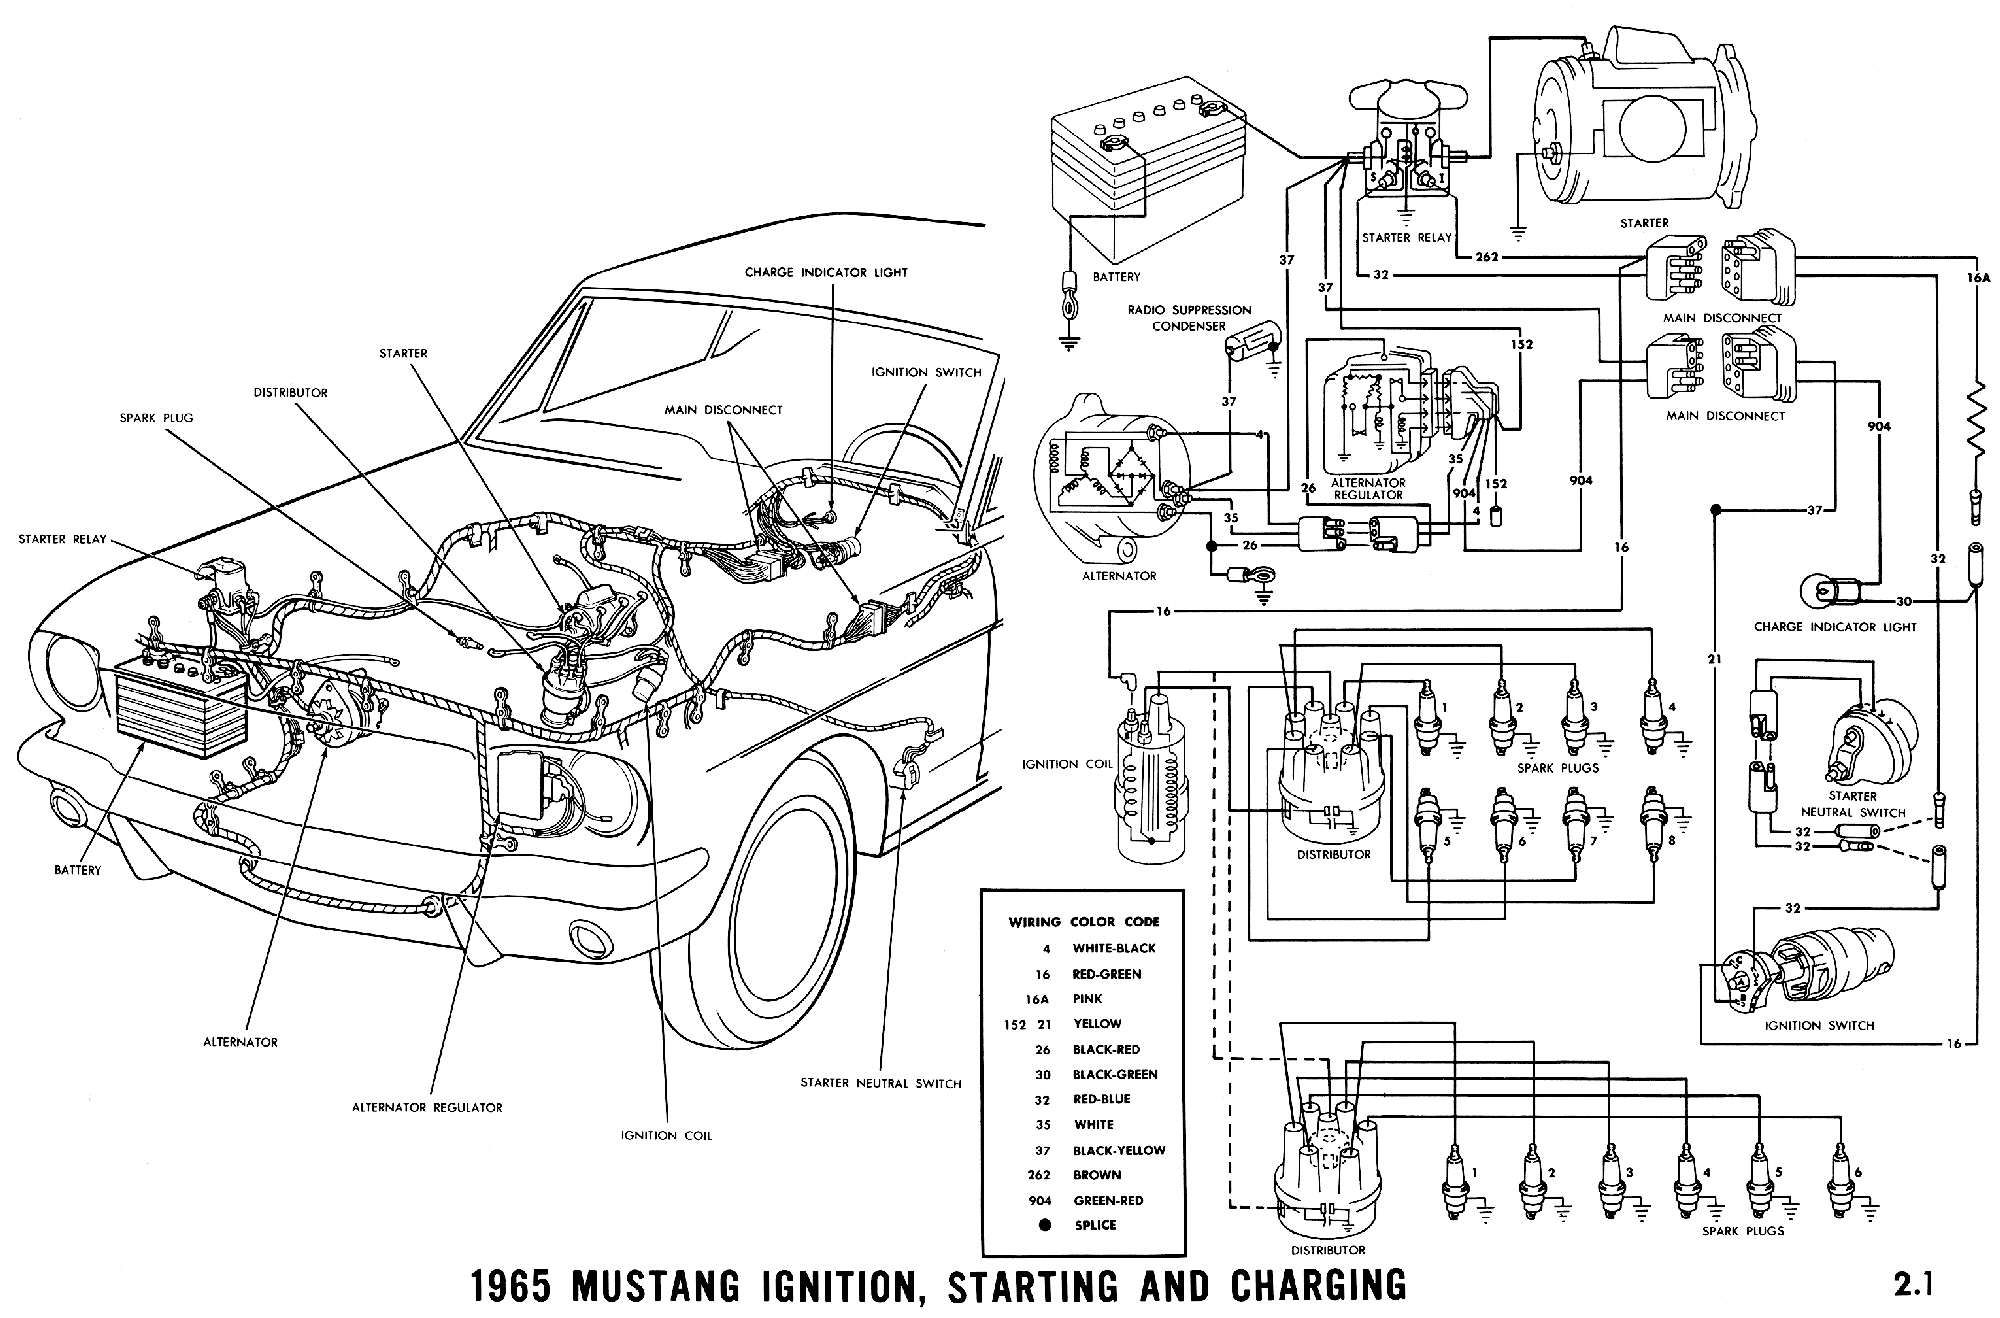 hight resolution of 1965 mustang wiring diagrams mustang 1965 mustang mustang basic ignition wiring diagram 1965 mustang